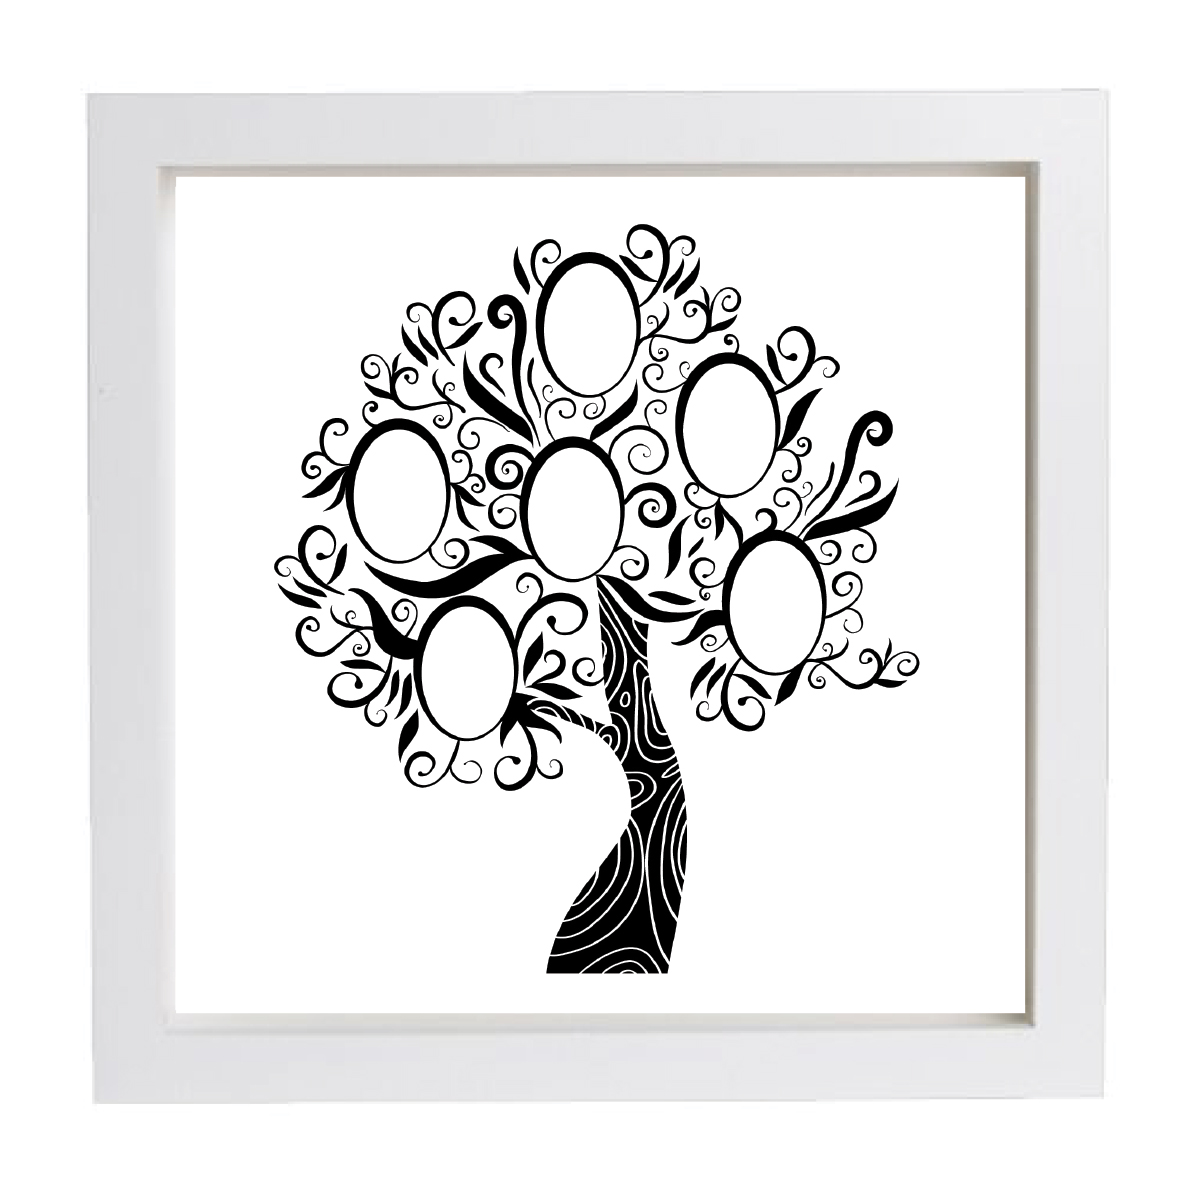 Personalised Framed Family Tree Frame | Family Tree Prints